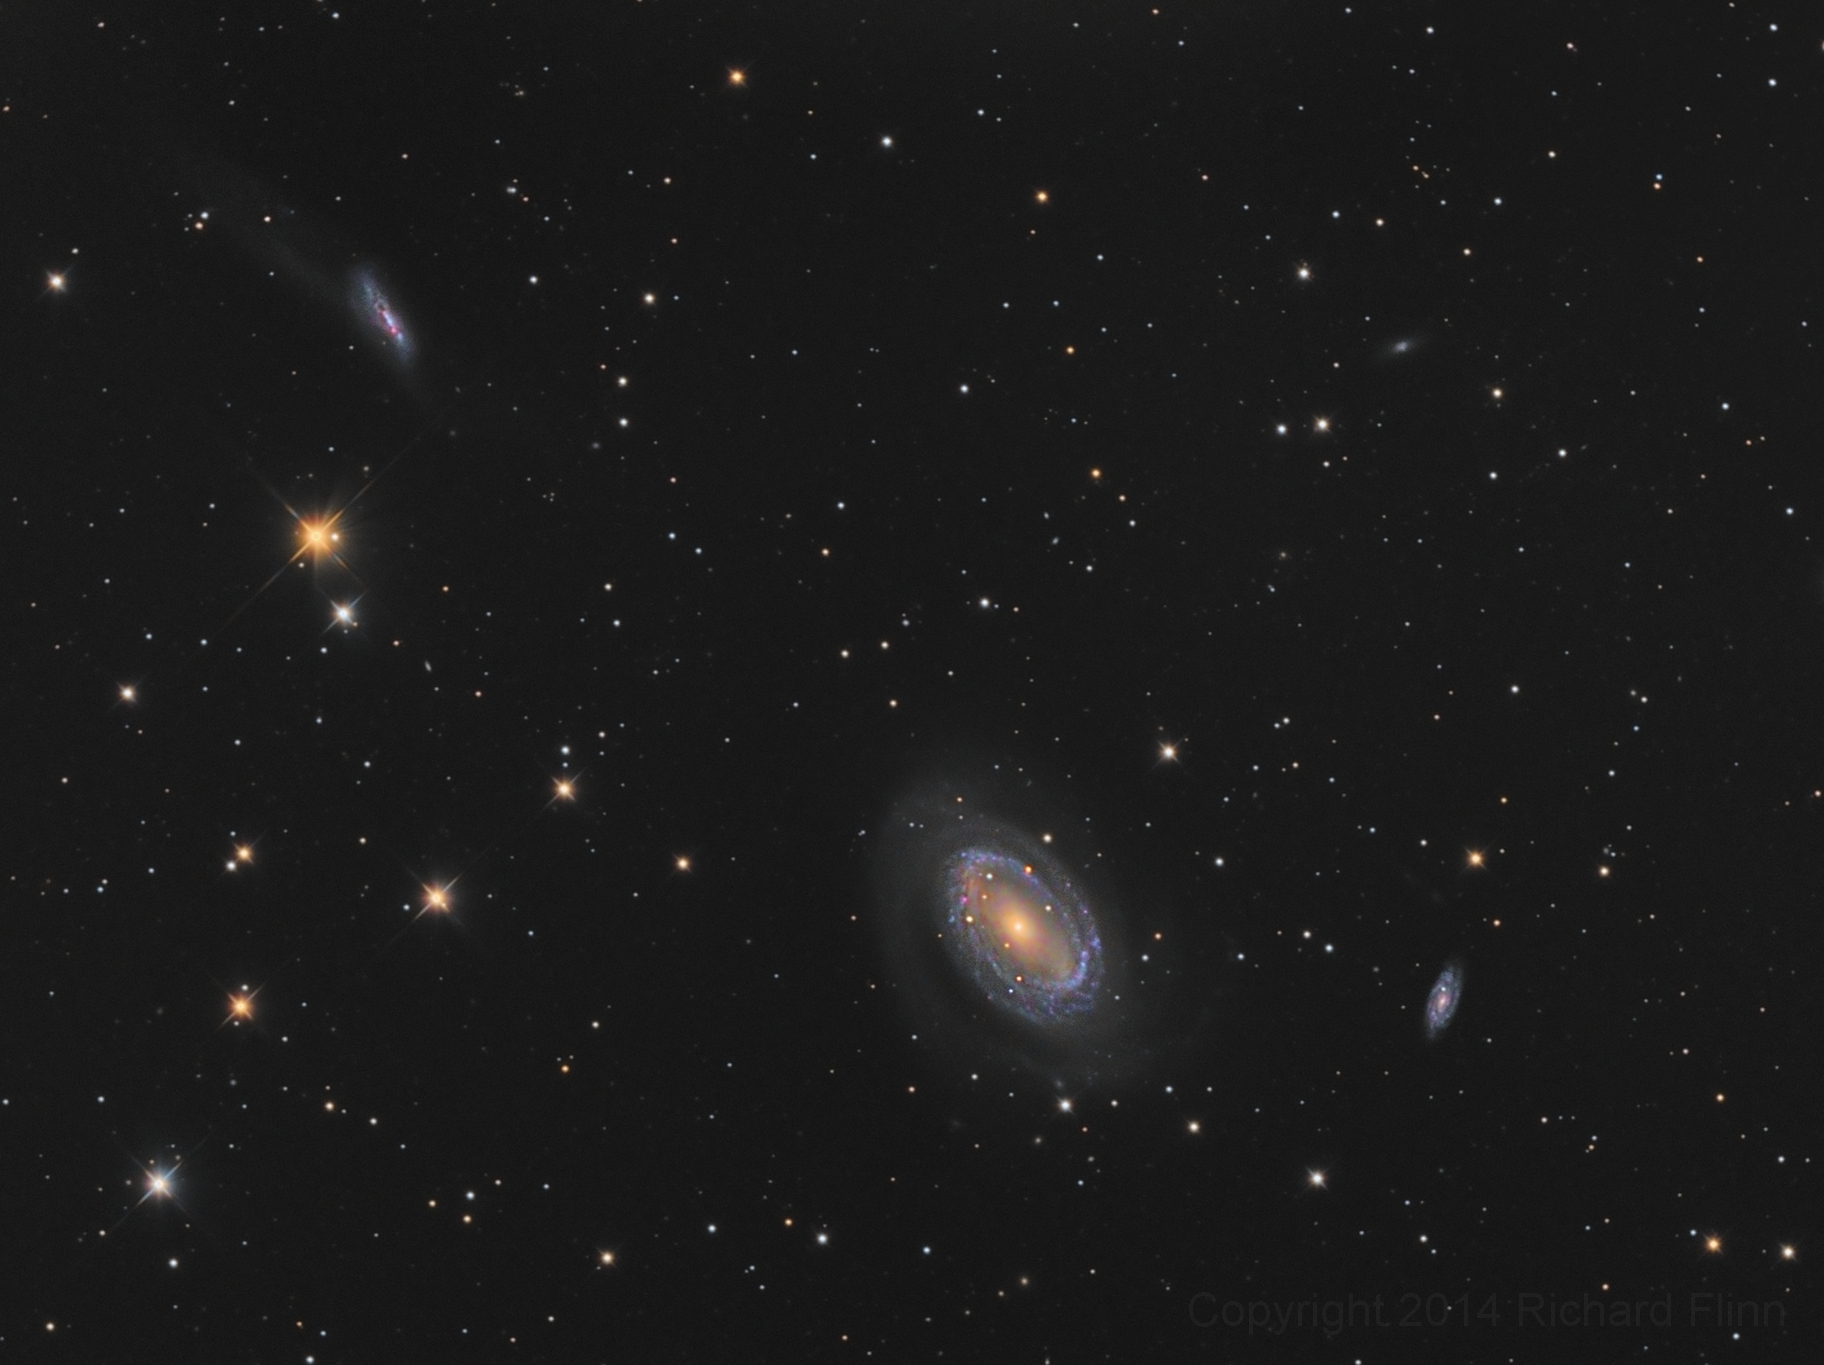 NGC 4725 - spiral galaxy about 40 million light-years away in the constellation Coma Berenices.